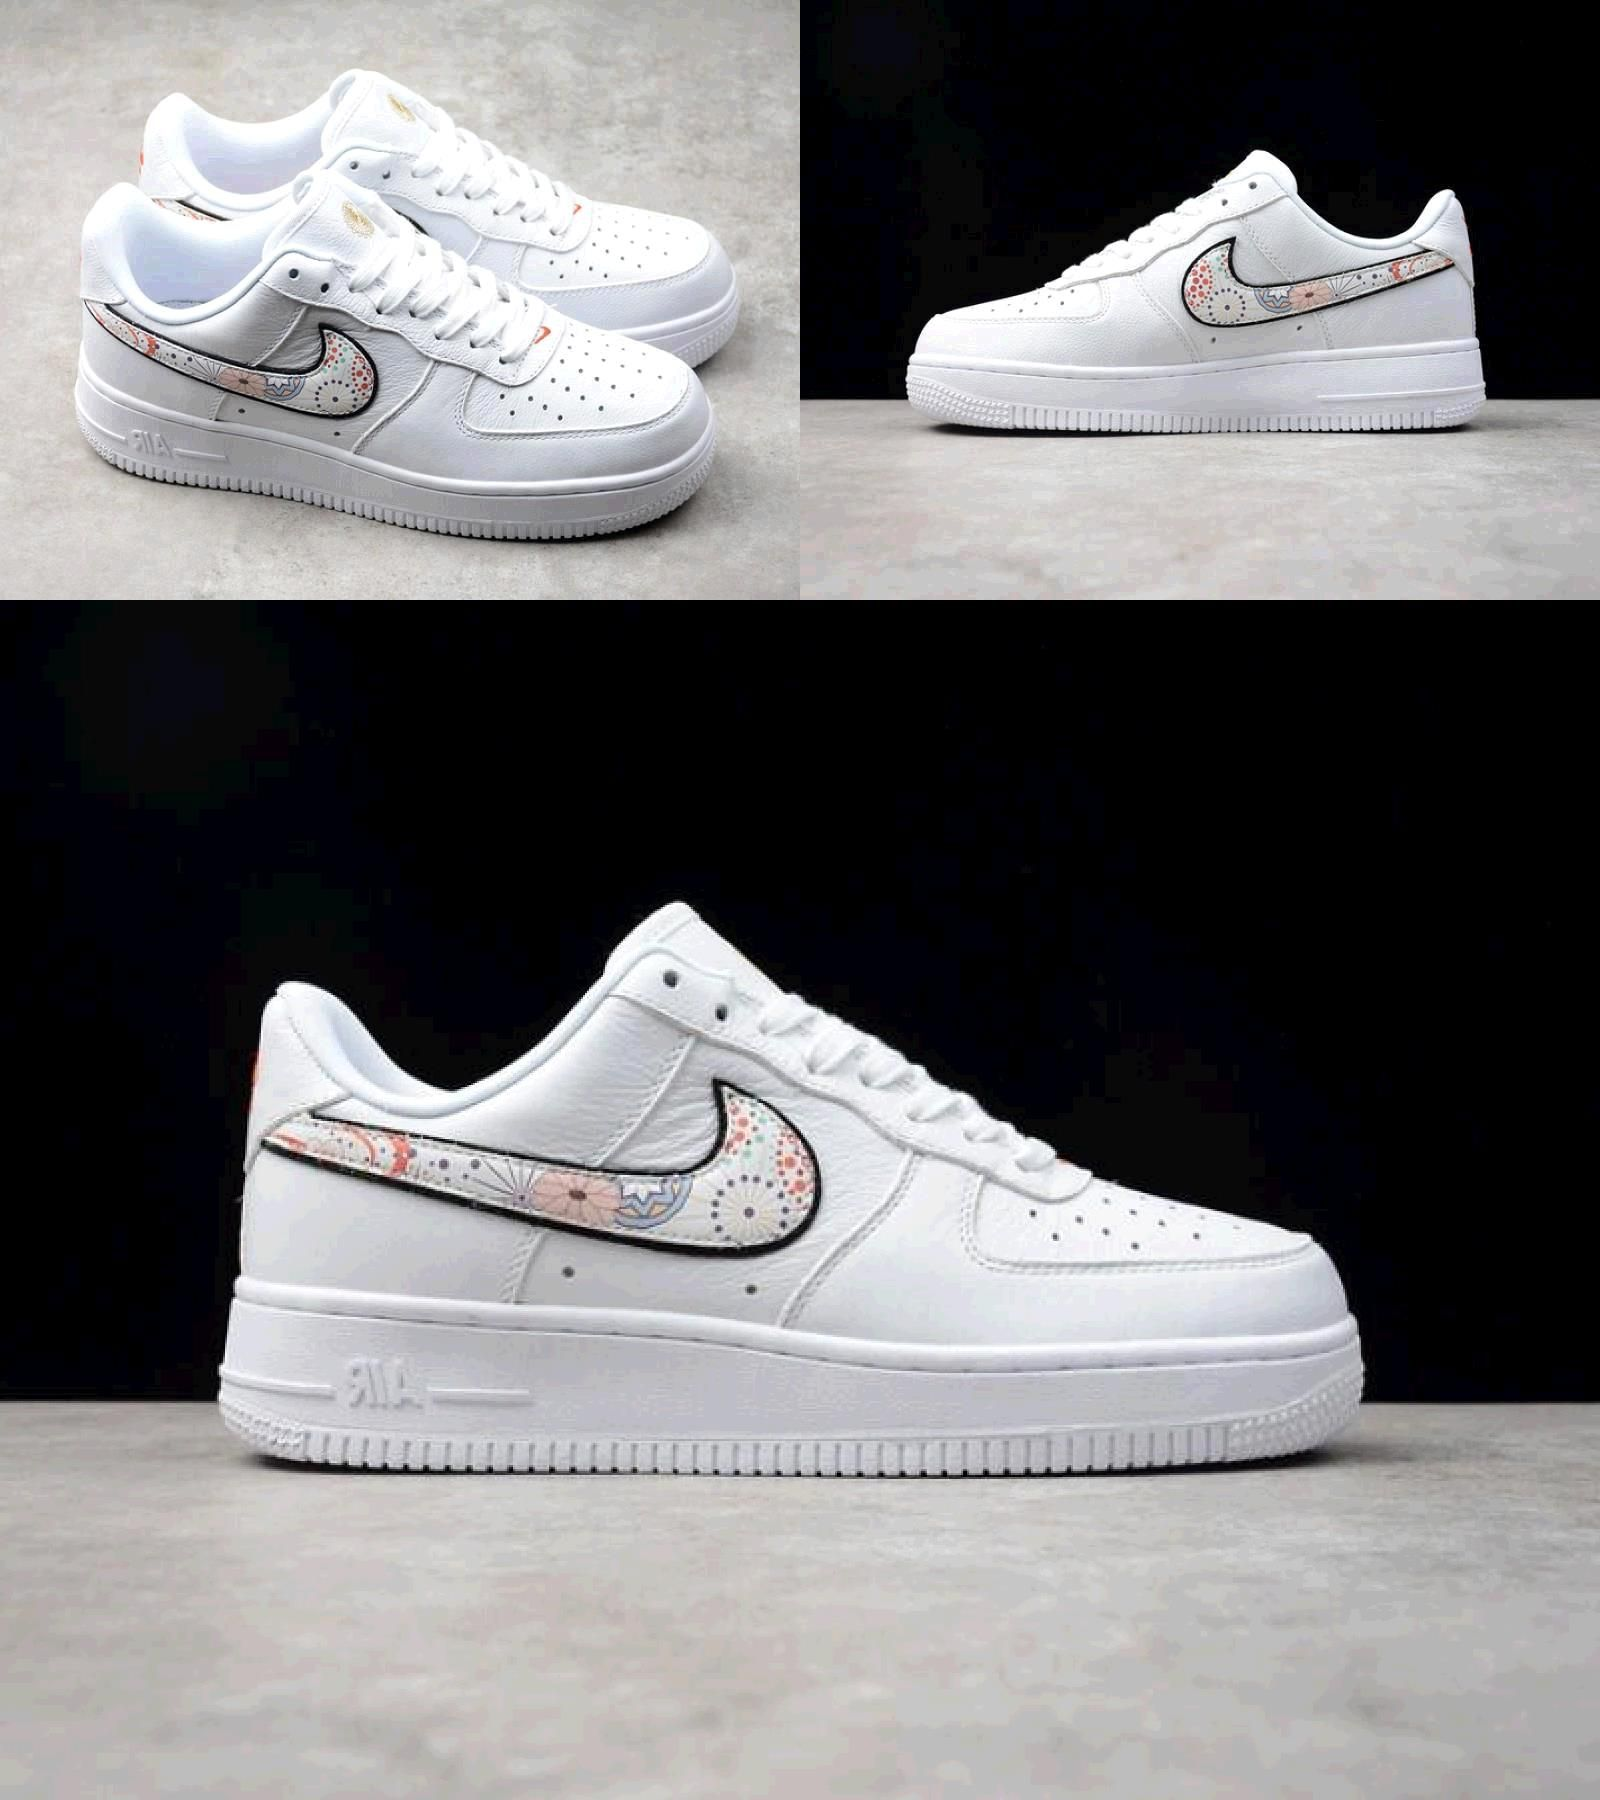 Nike Air Force 1 Low Lunar New Year A09381100 in 2020